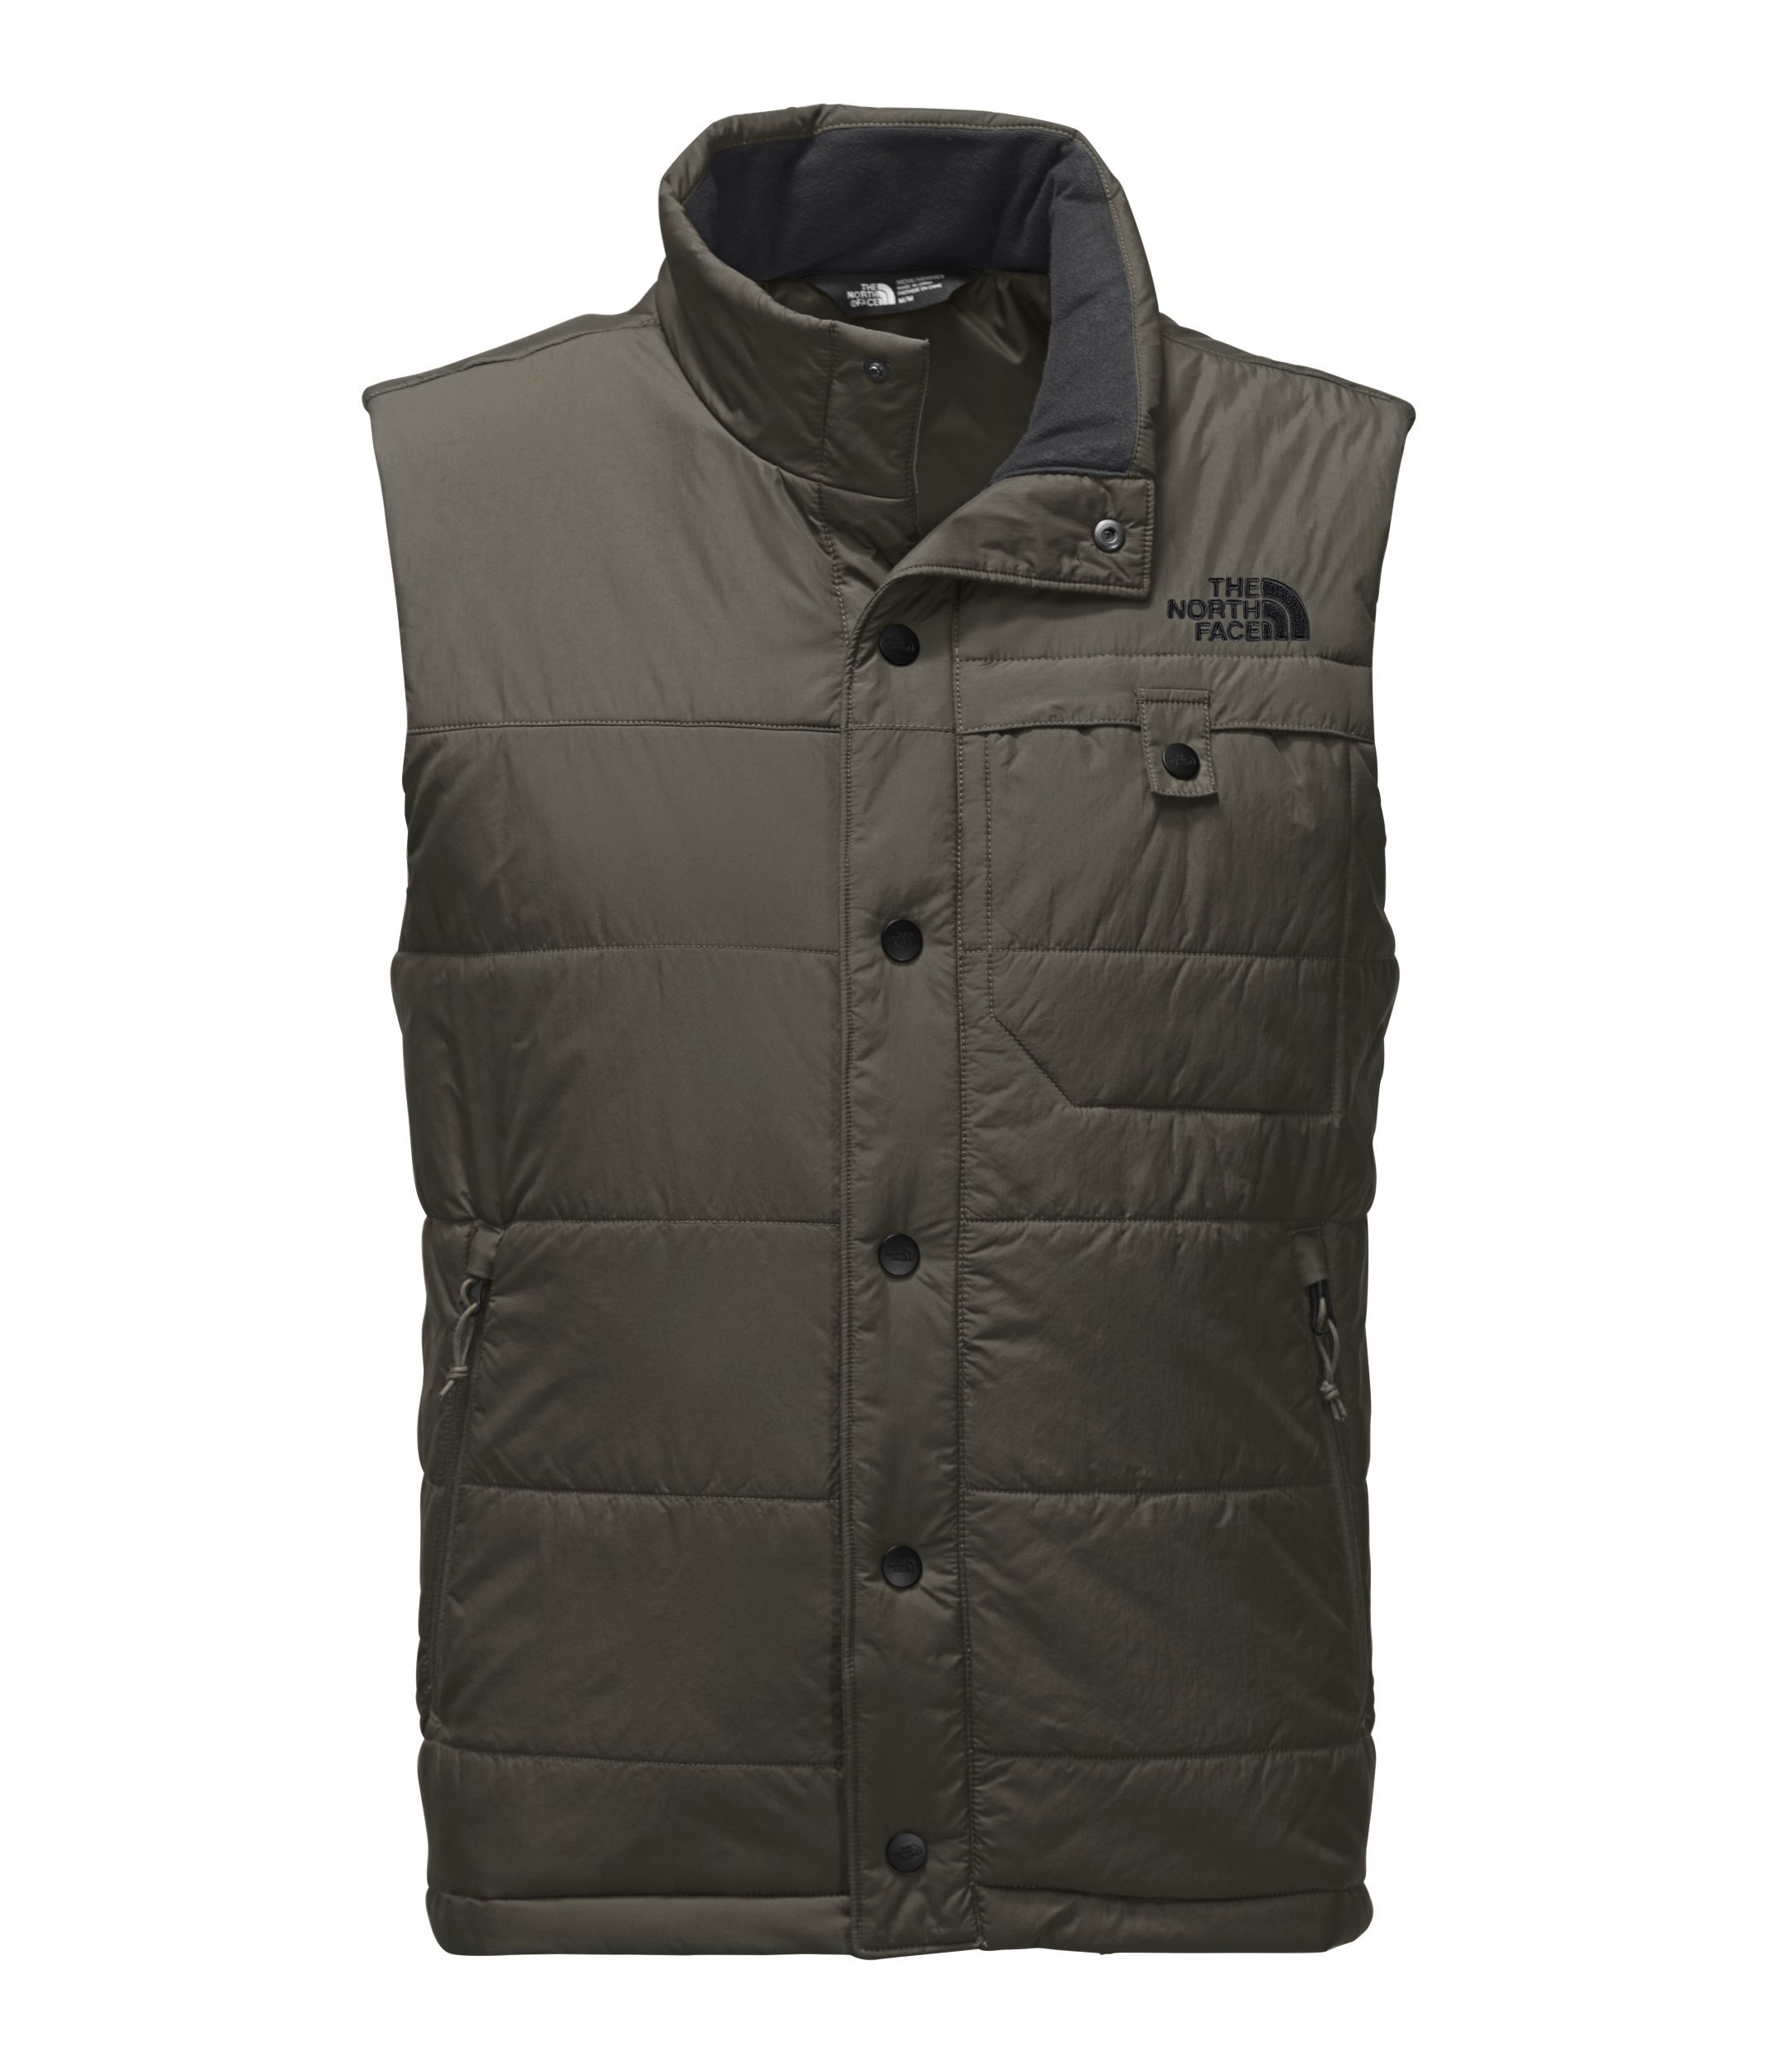 The North Face Men's Harway Vest - New Taupe Green & New Taupe Green - XXL